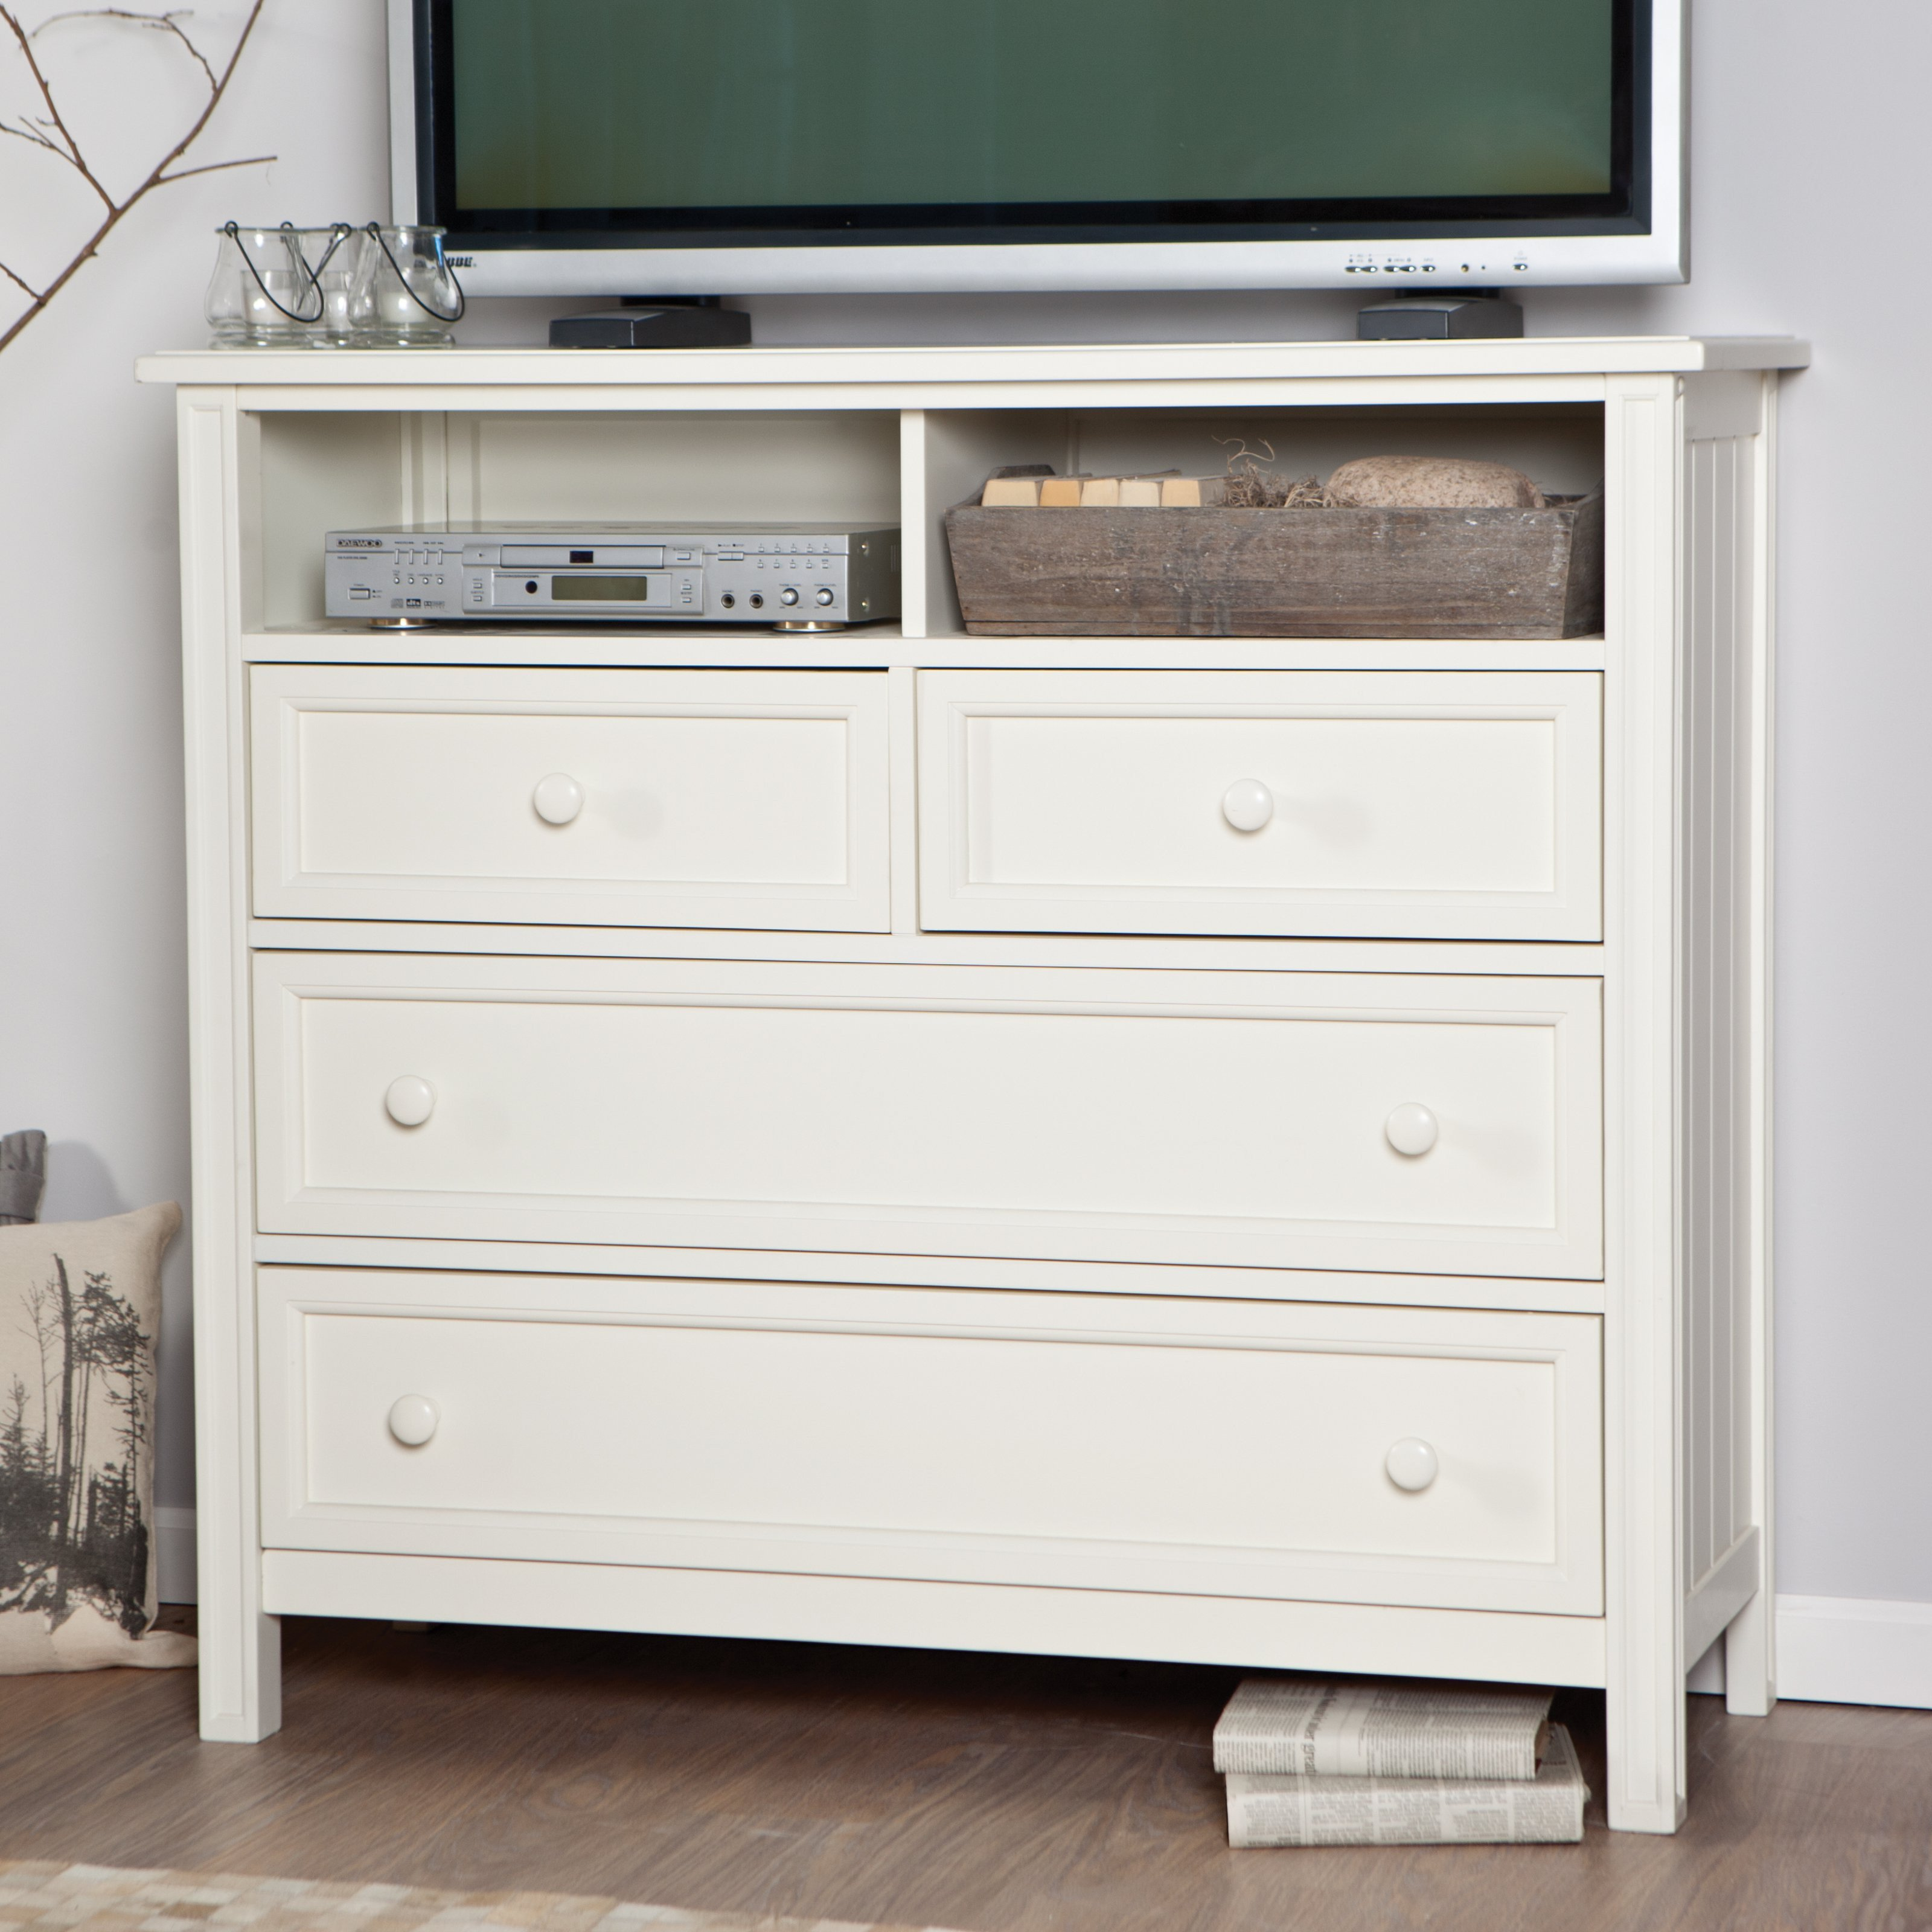 Tv Media Chest Bedroom Luxury Media Chests for Bedroom Bedroom Furniture Mosaic Media